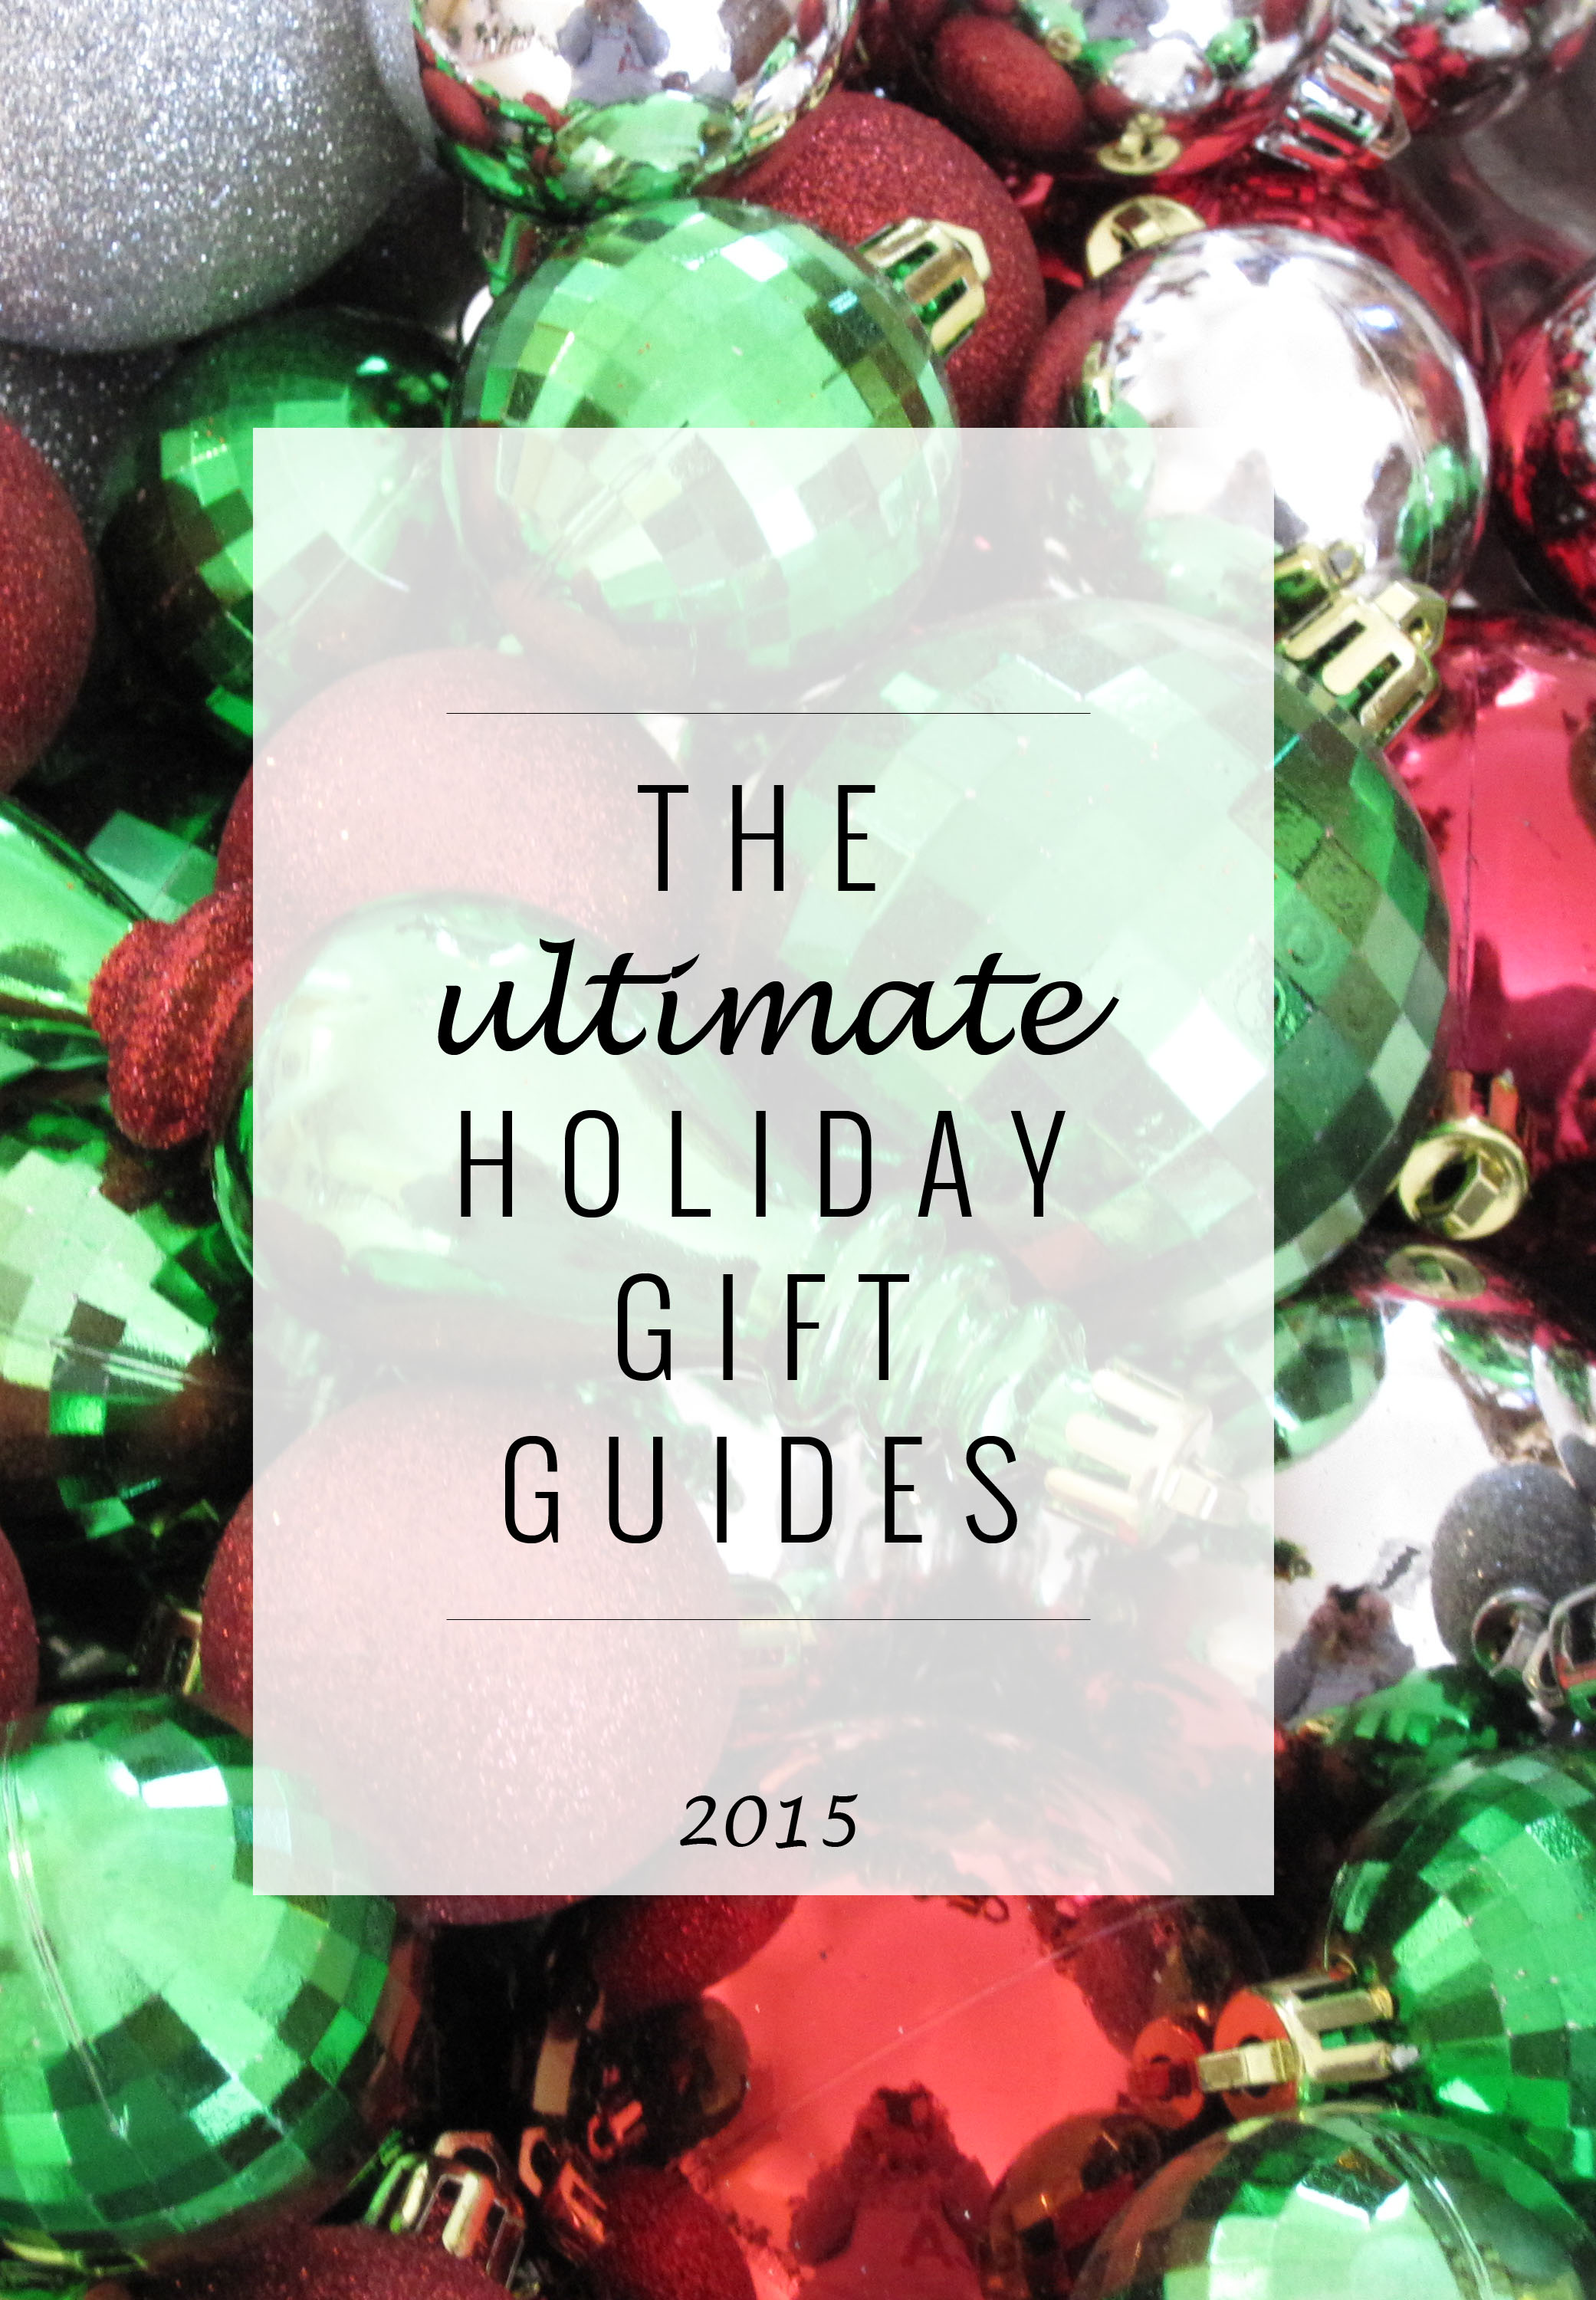 Holiday Gift Guide Ideas for Babies & Toddlers | Momma Society-The Community of Modern Moms | www.MommaSociety.com | Join our party on Instagram @MommaSociety